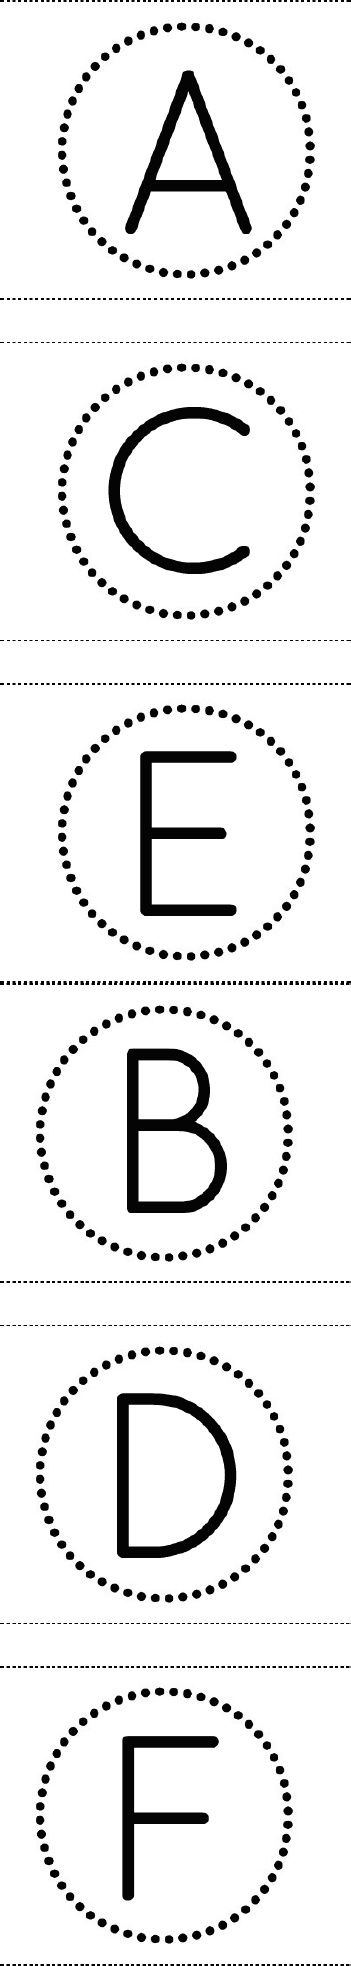 Free Printable Circle Banner Alphabet - for making birthday banners, signs, etc